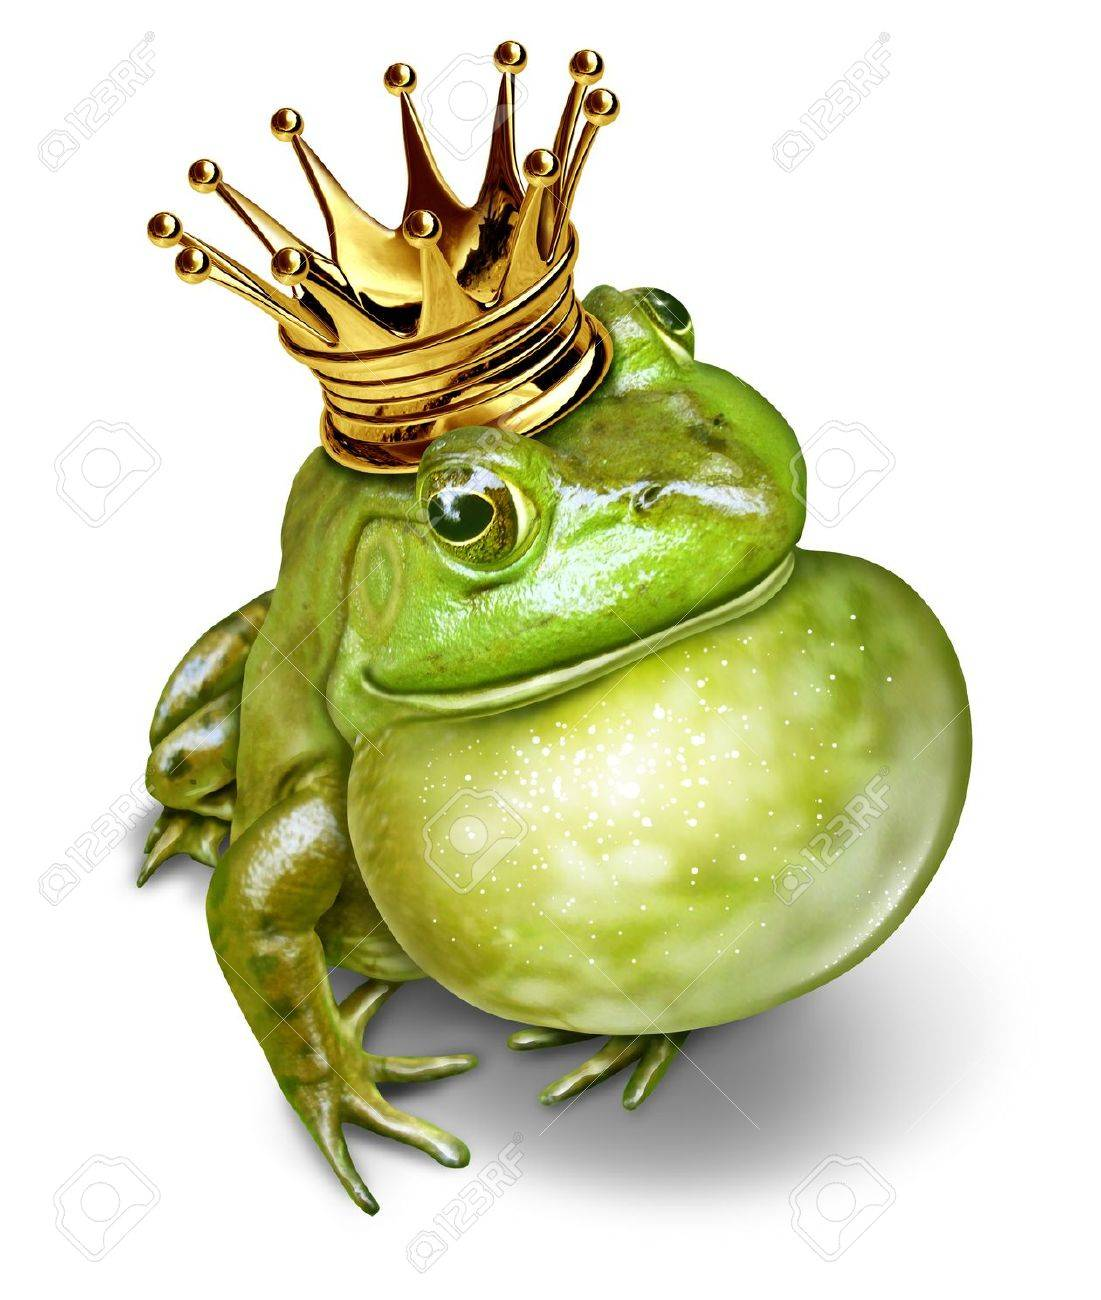 Frog prince with gold crown and an inflated throat representing the fairy tale concept of communication change and transformation from an amphibian to royalty - 17997204